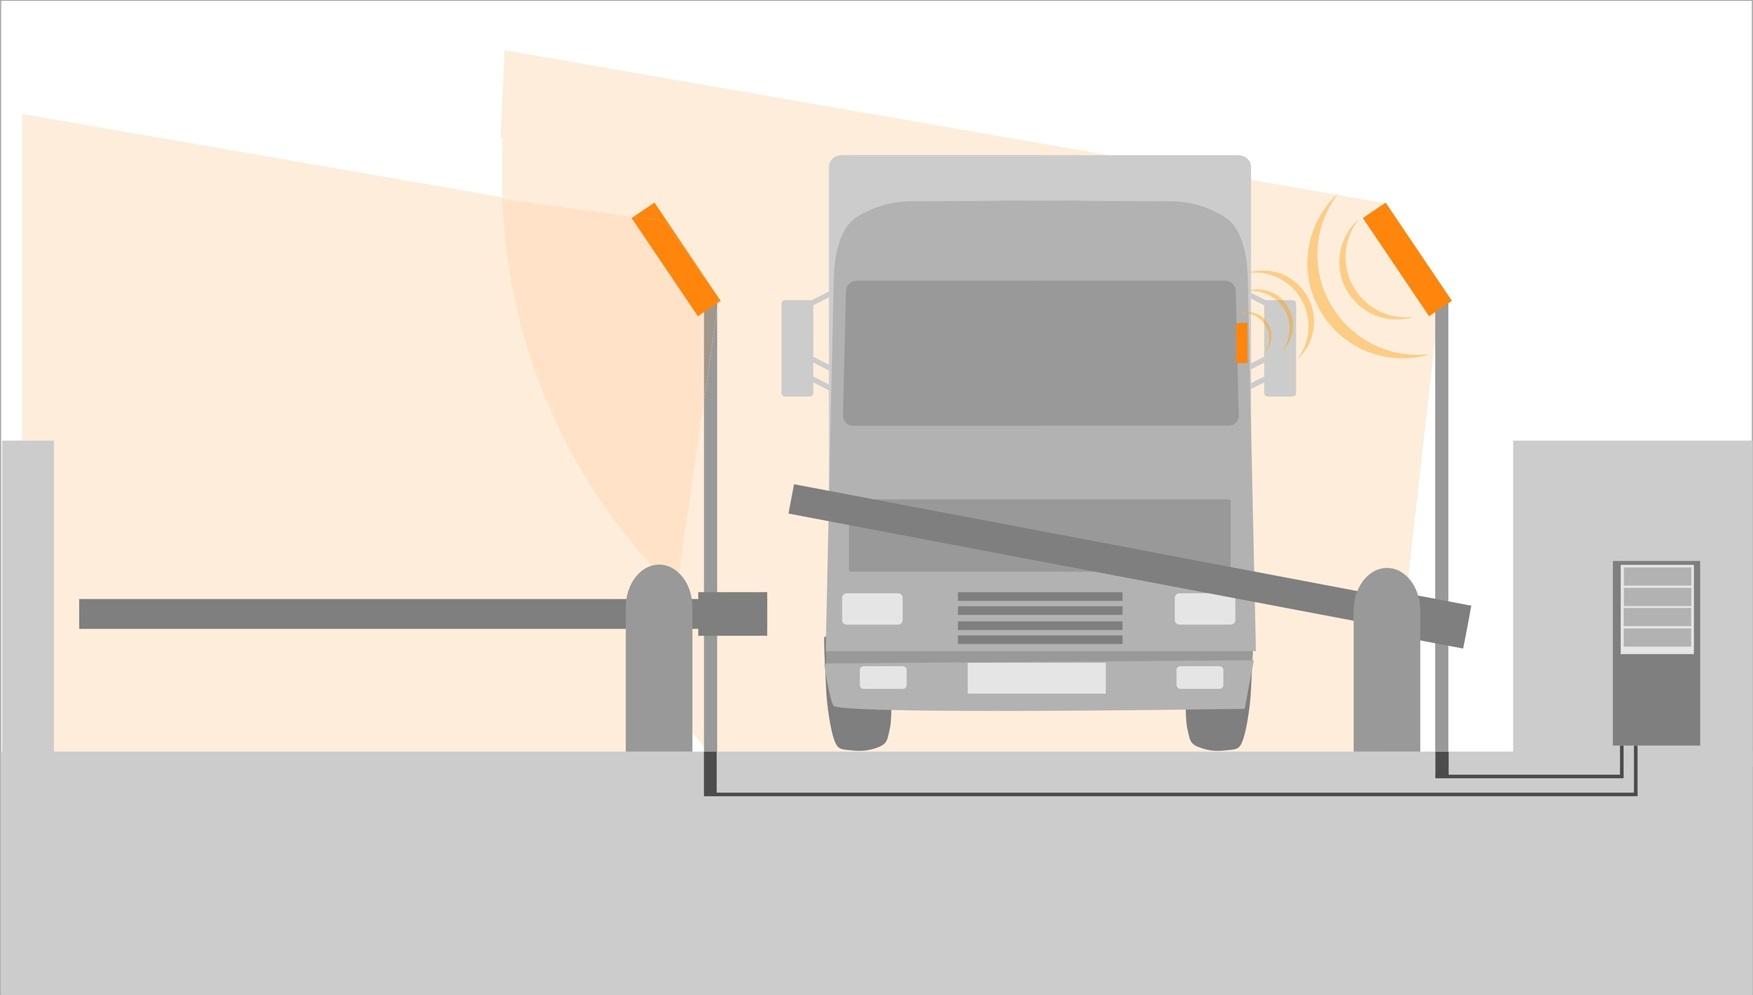 Illustration of RFID using for car identification. Trucks RFID identification